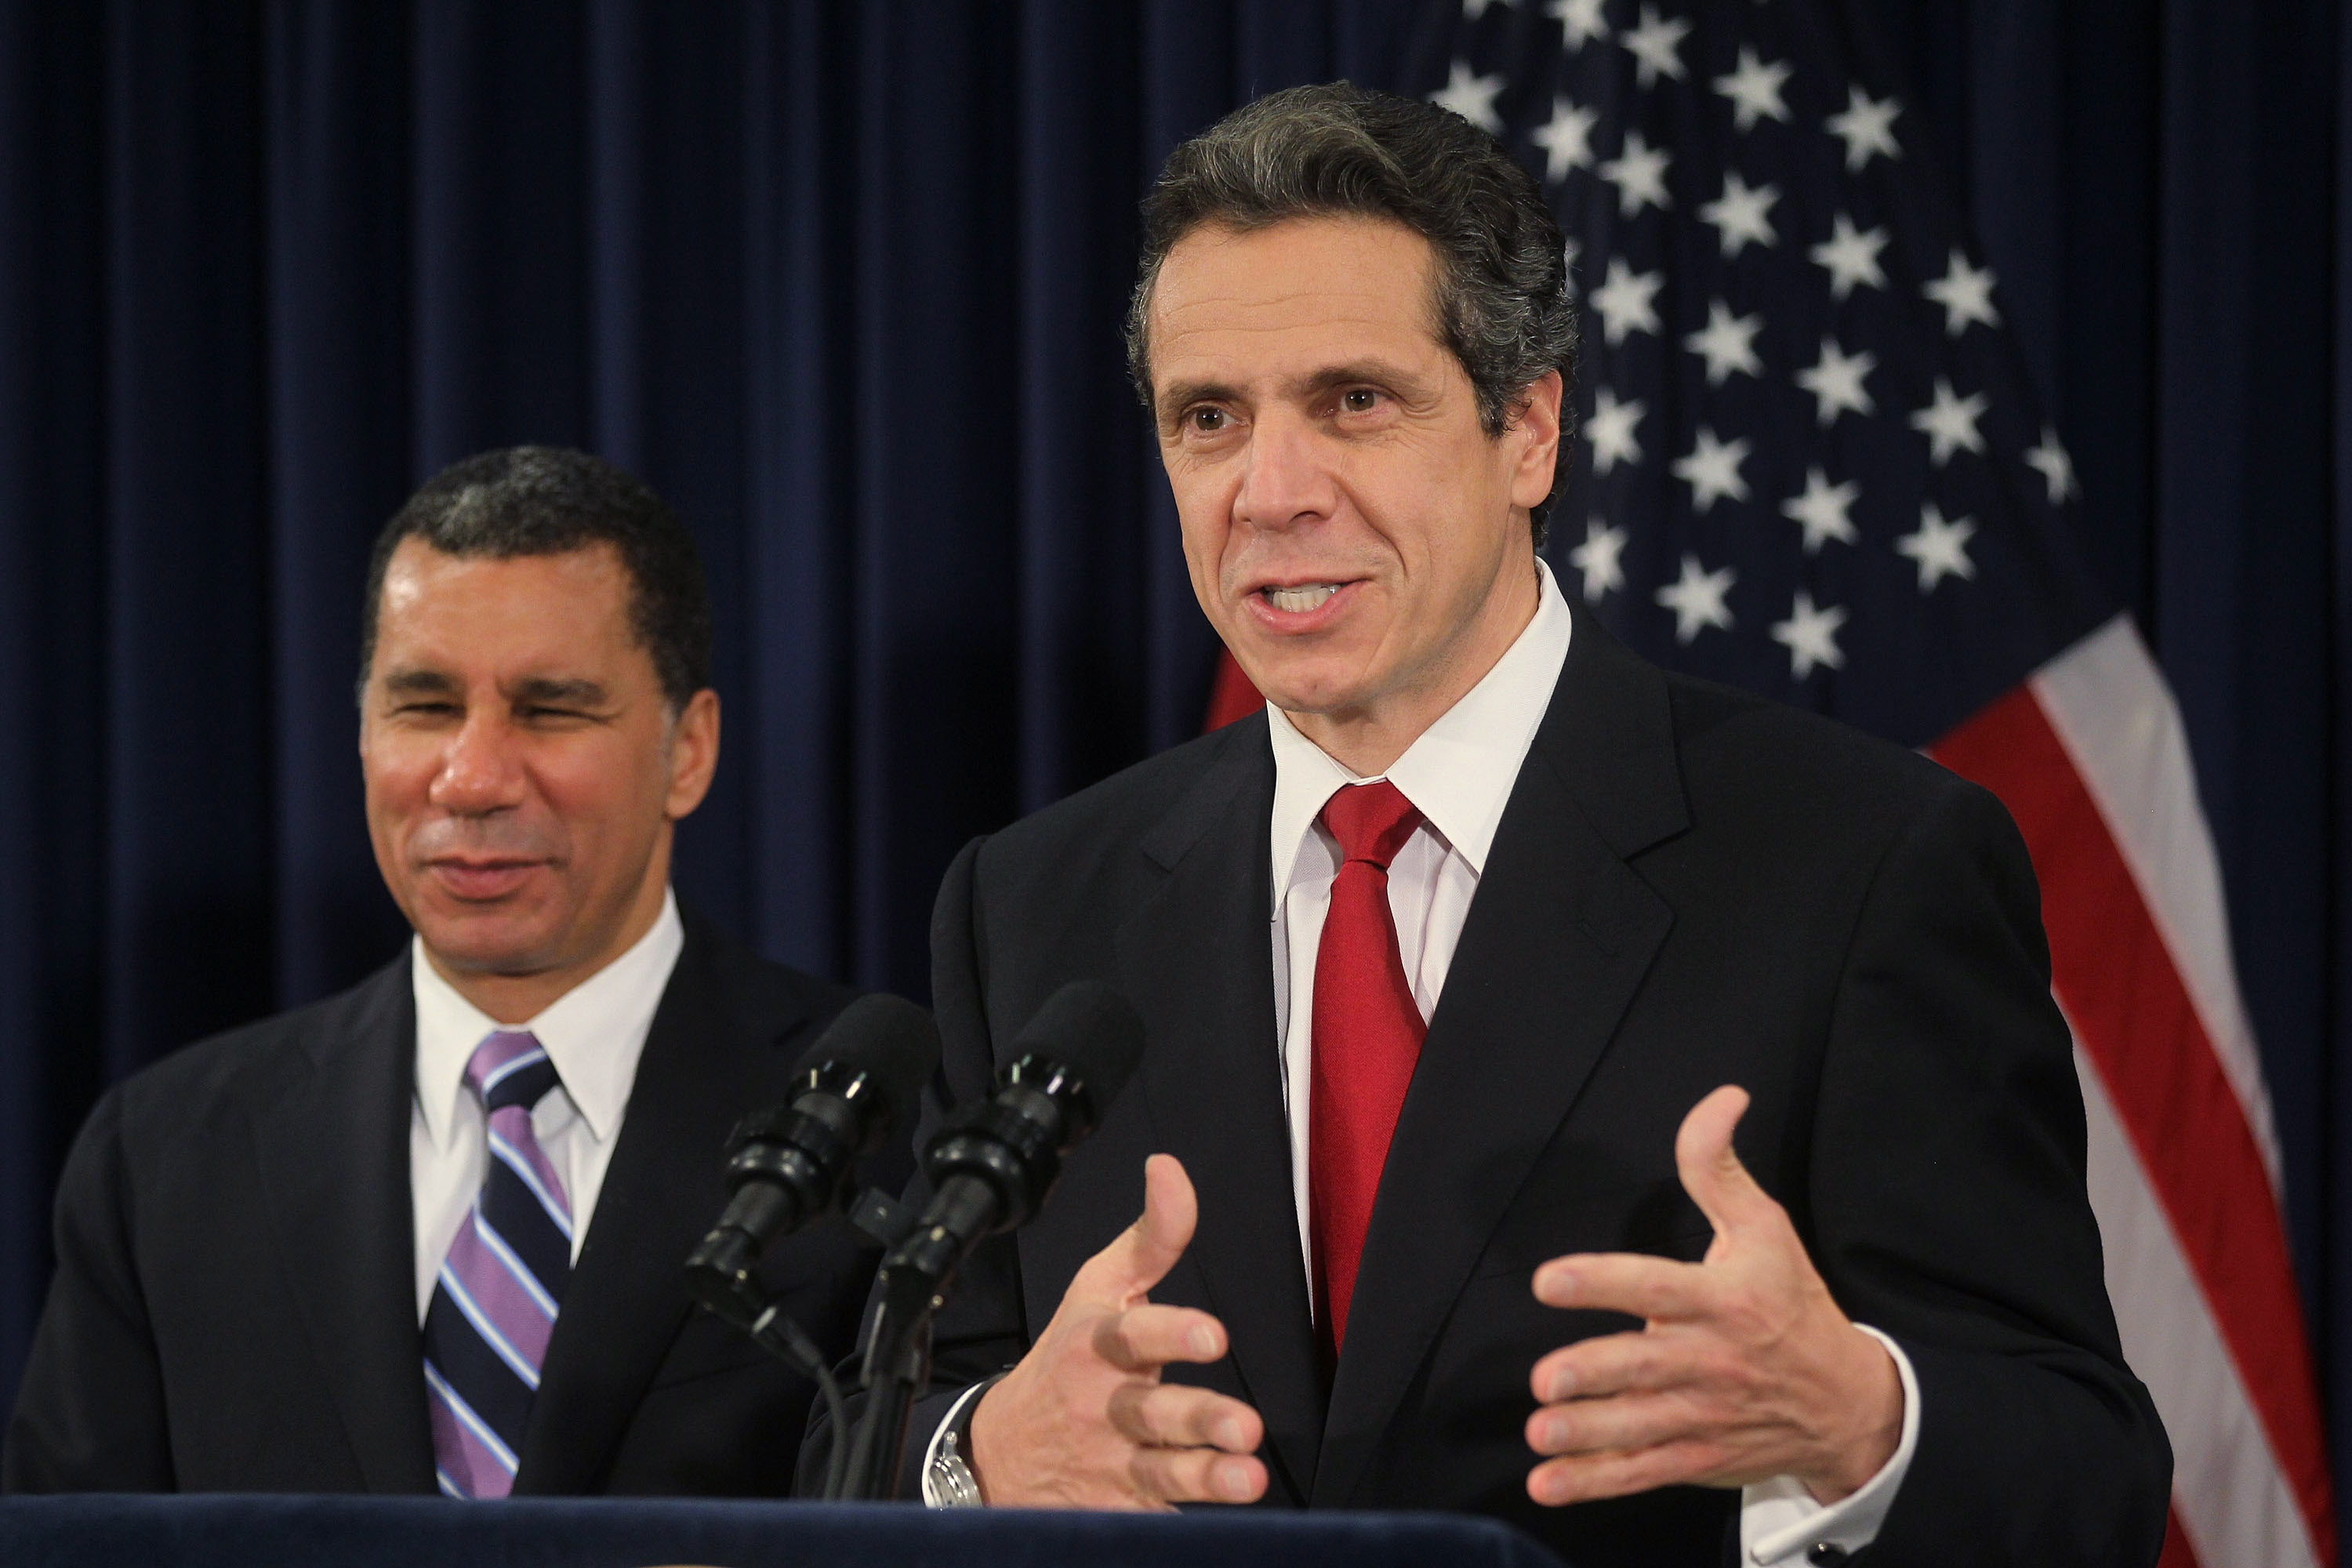 Governor Andrew Cuomo and David Paterson. (Photo: Mario Tama/Getty Images)